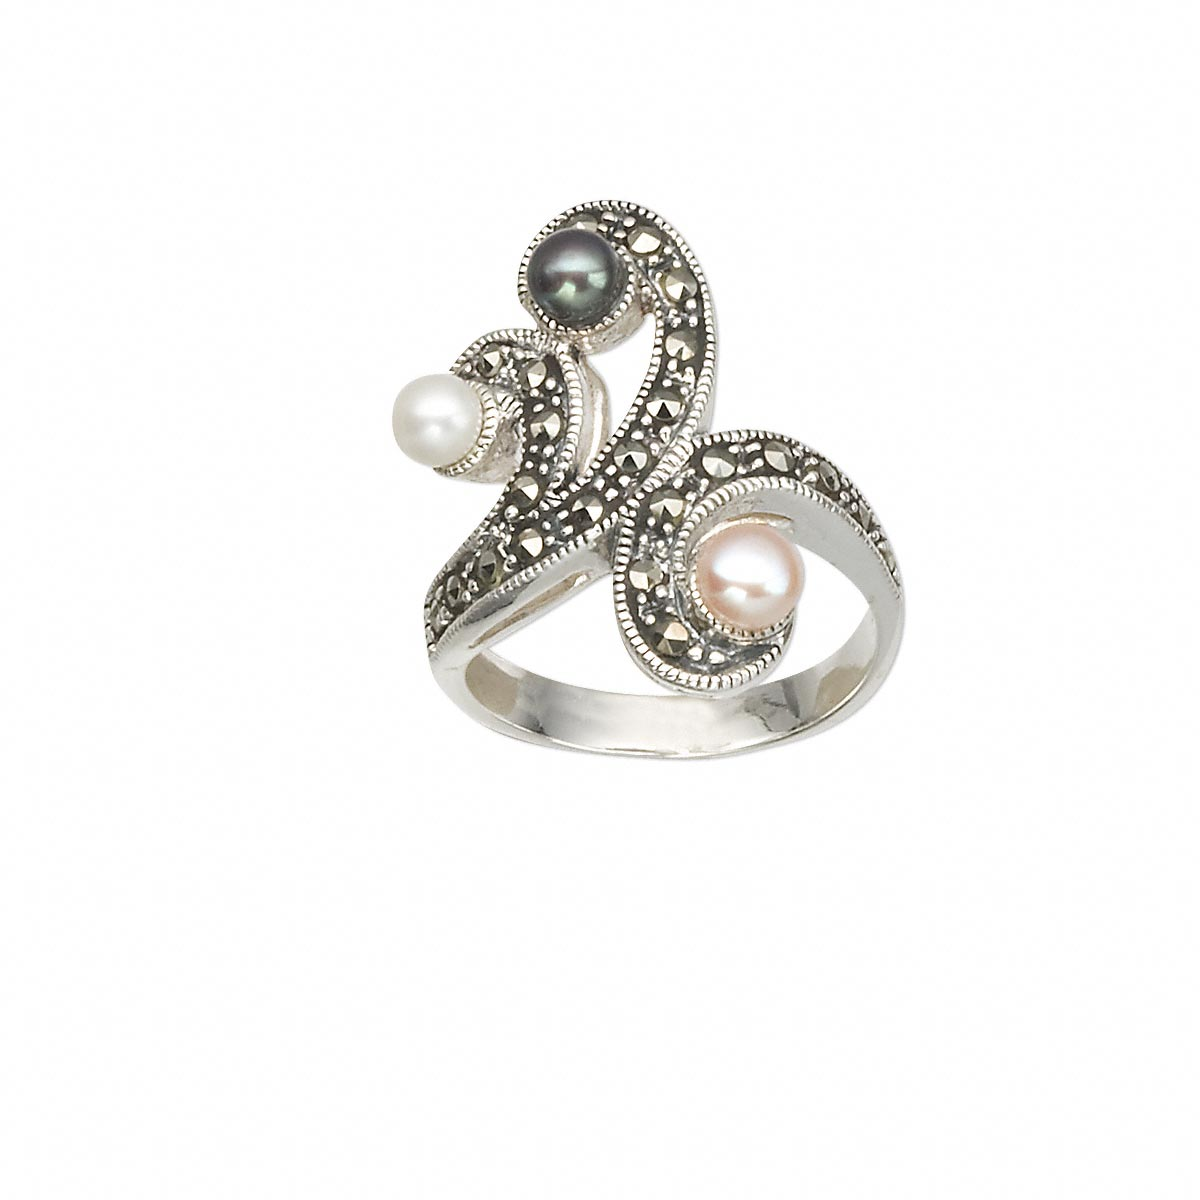 b829d77c6 Ring, cultured freshwater pearl (bleached / dyed) / marcasite (natural) / sterling  silver, multicolored, 24x20mm wave, size 7-1/2. Sold individually.